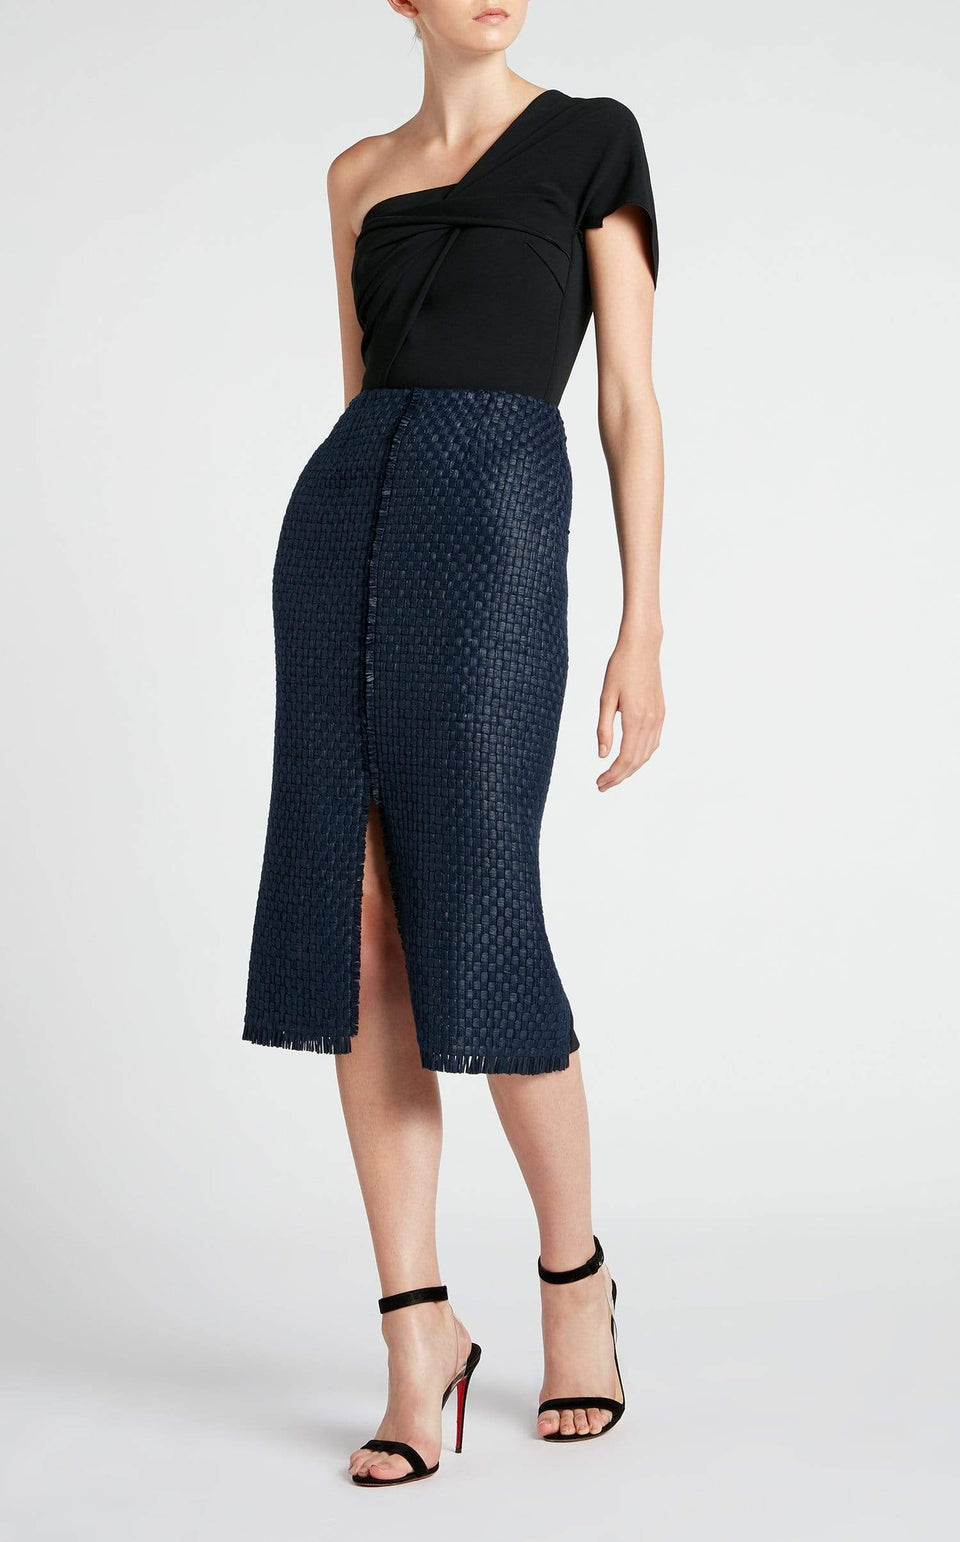 Morita Dress In Navy/Black from Roland Mouret